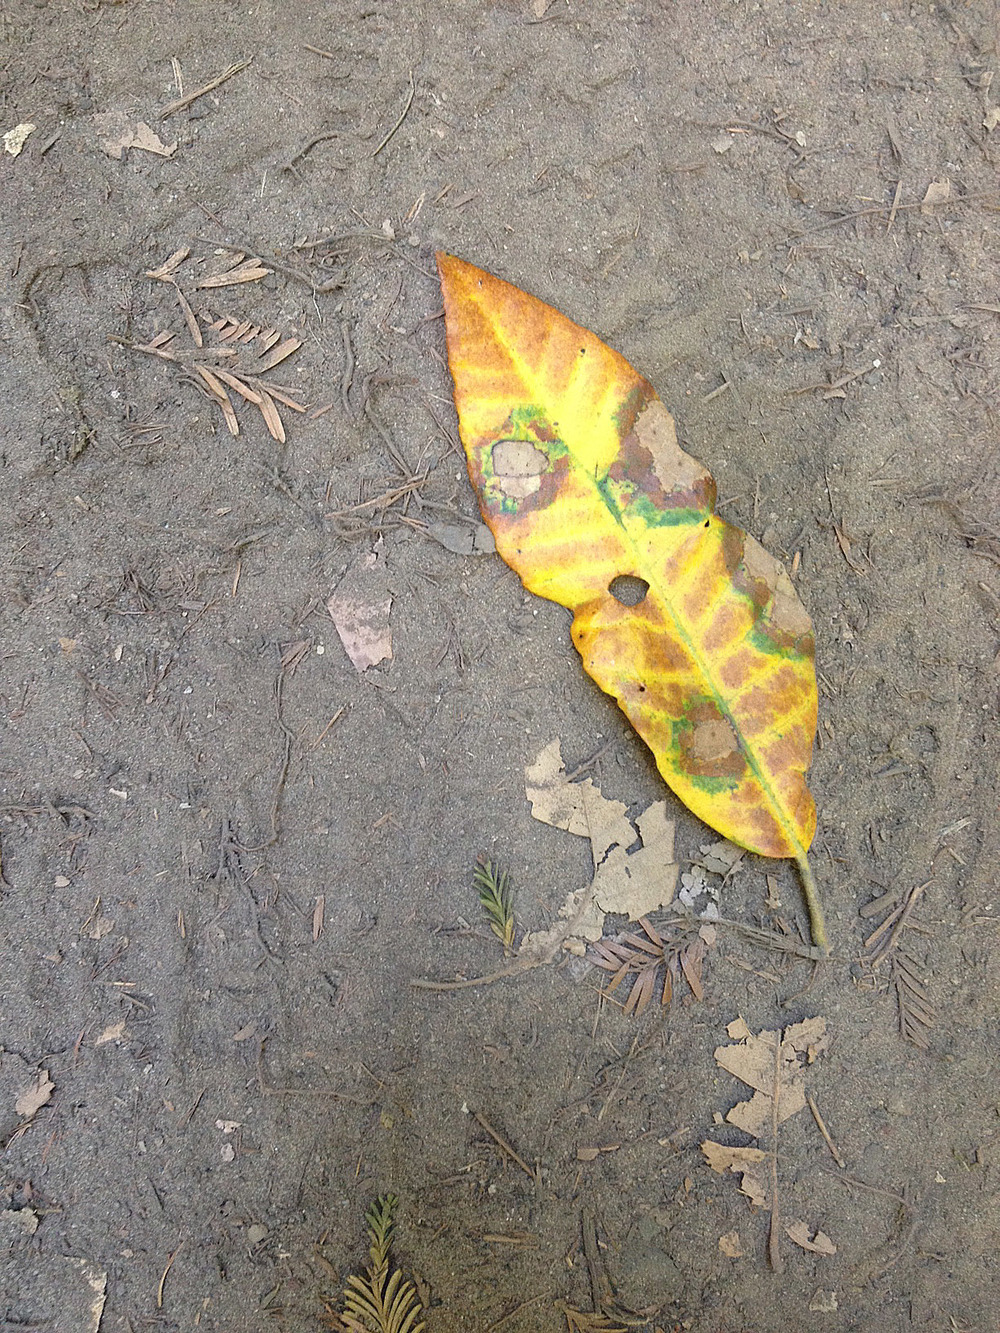 The colors of decaying leaves are something else.